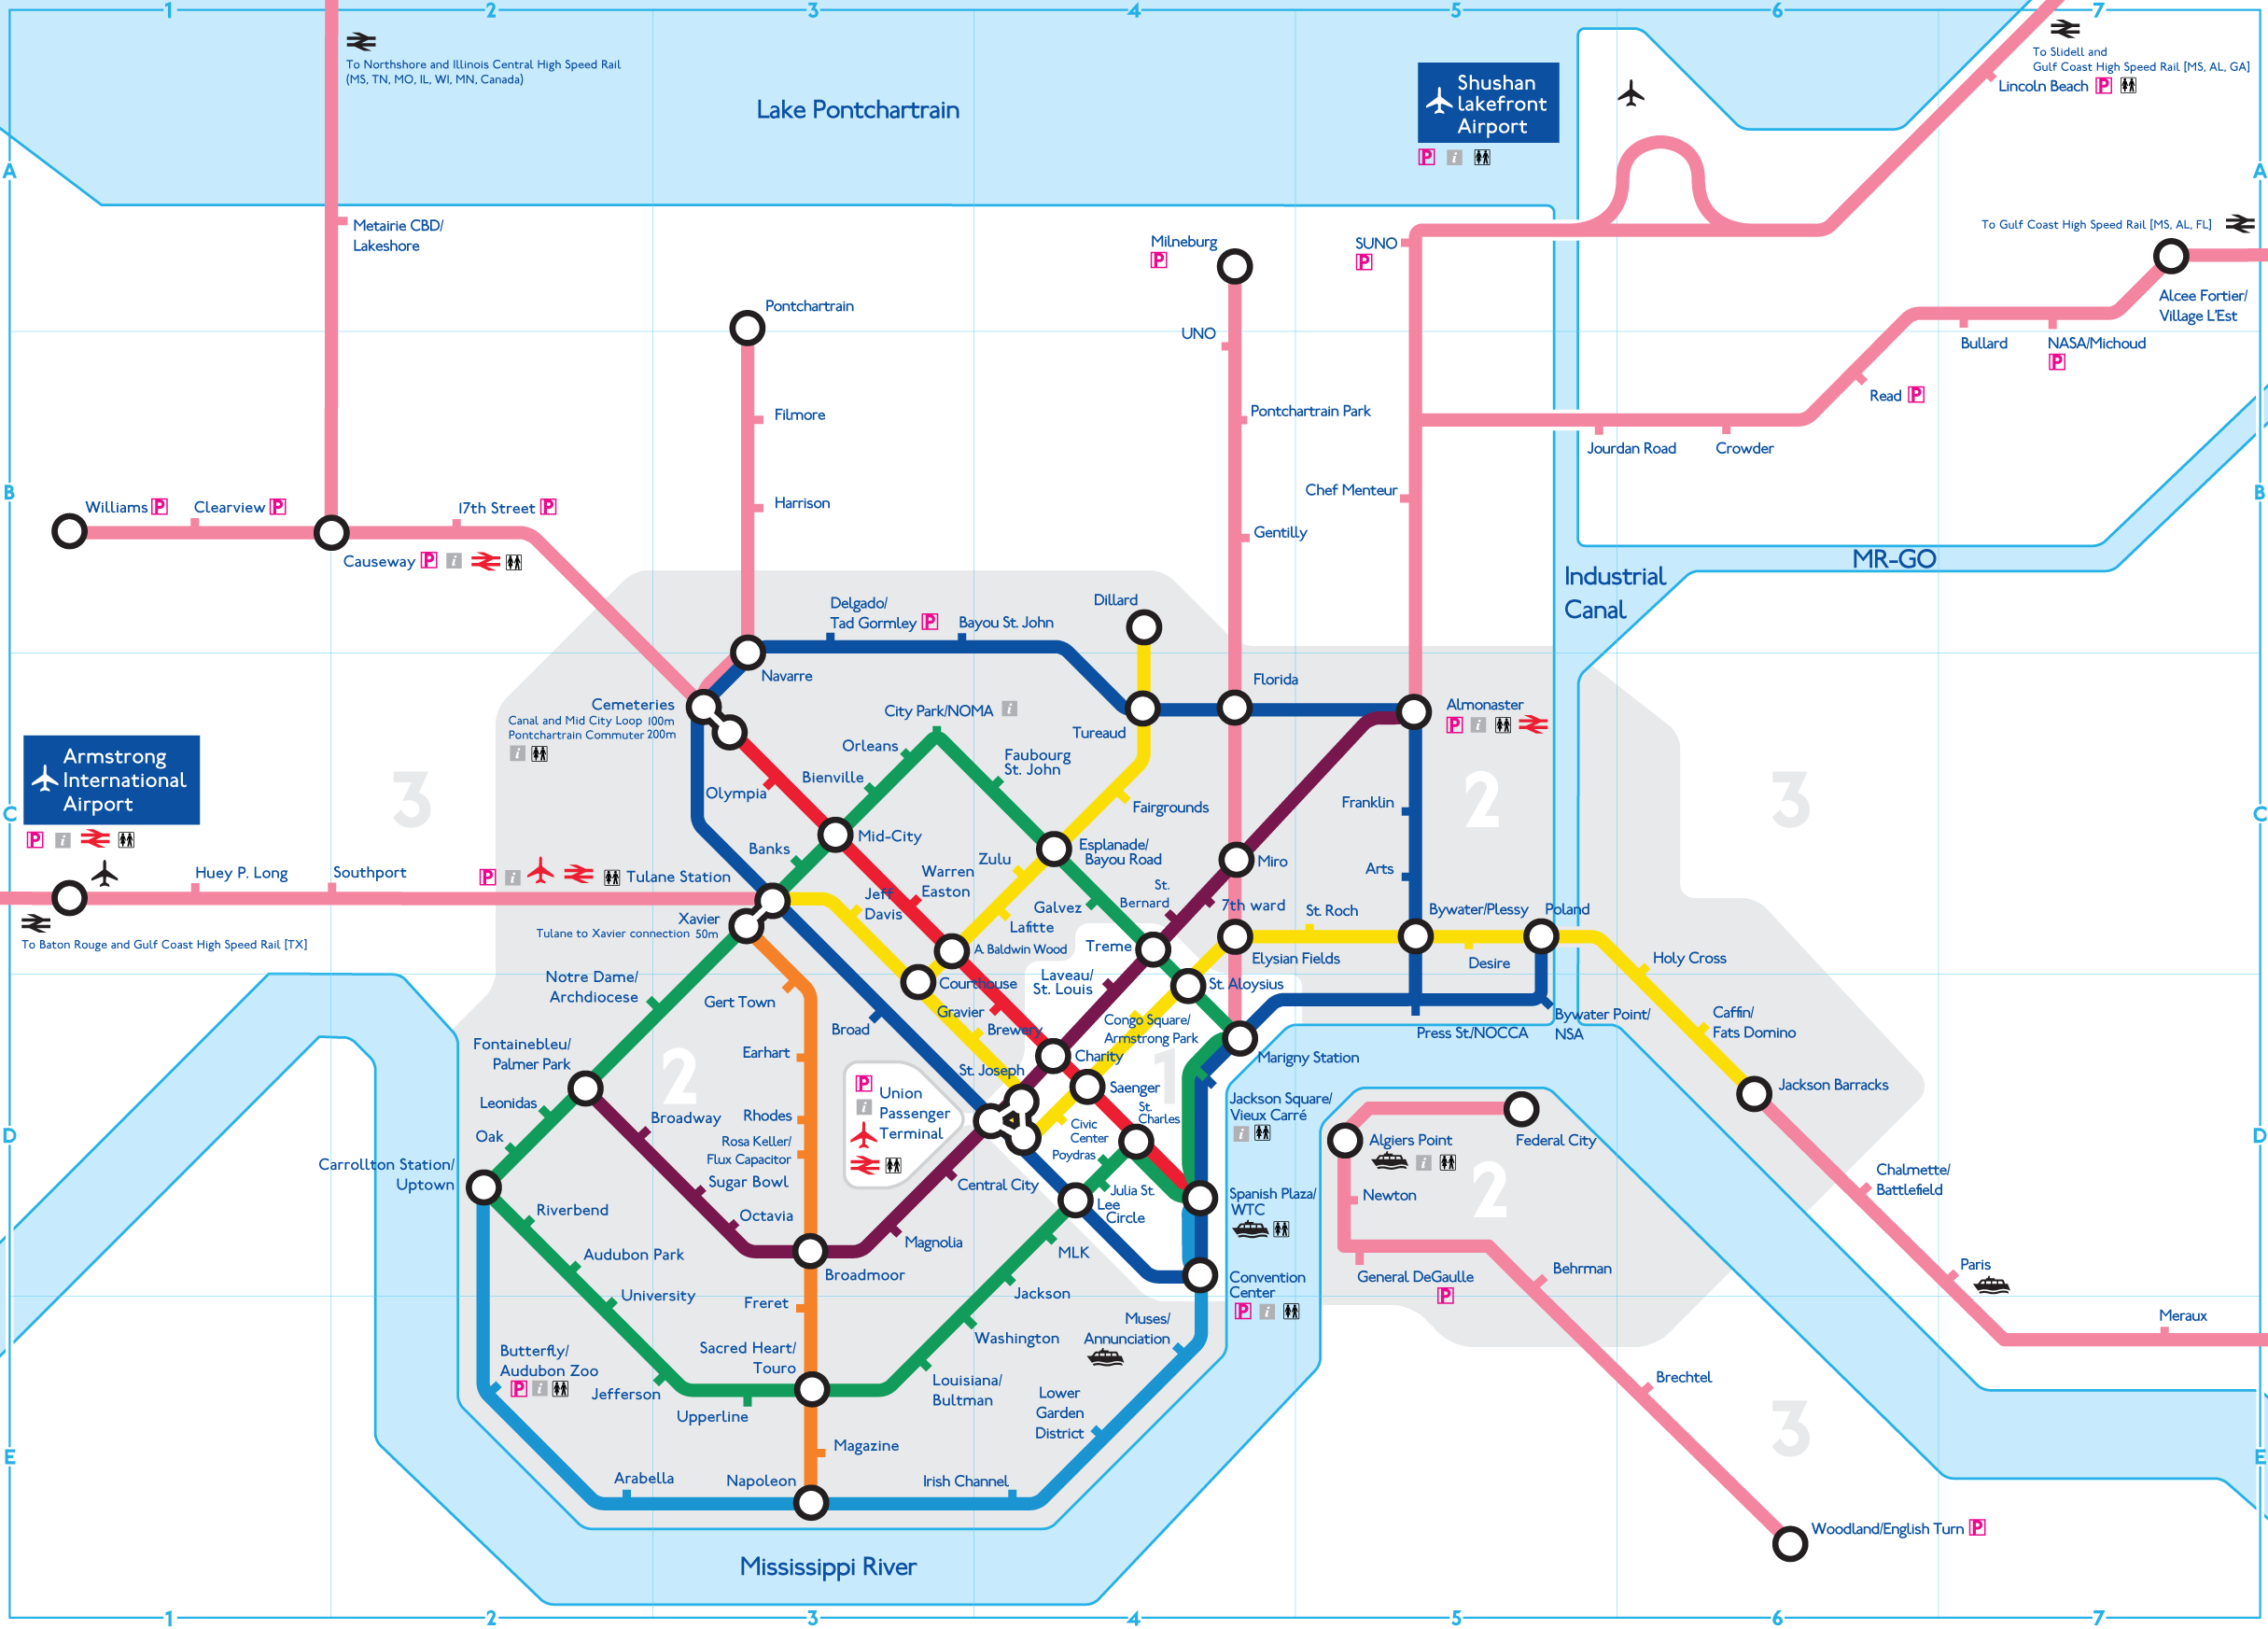 New Orleans Metro Map Wouldn't it be nice. New Orleans public transit idea | Favorite